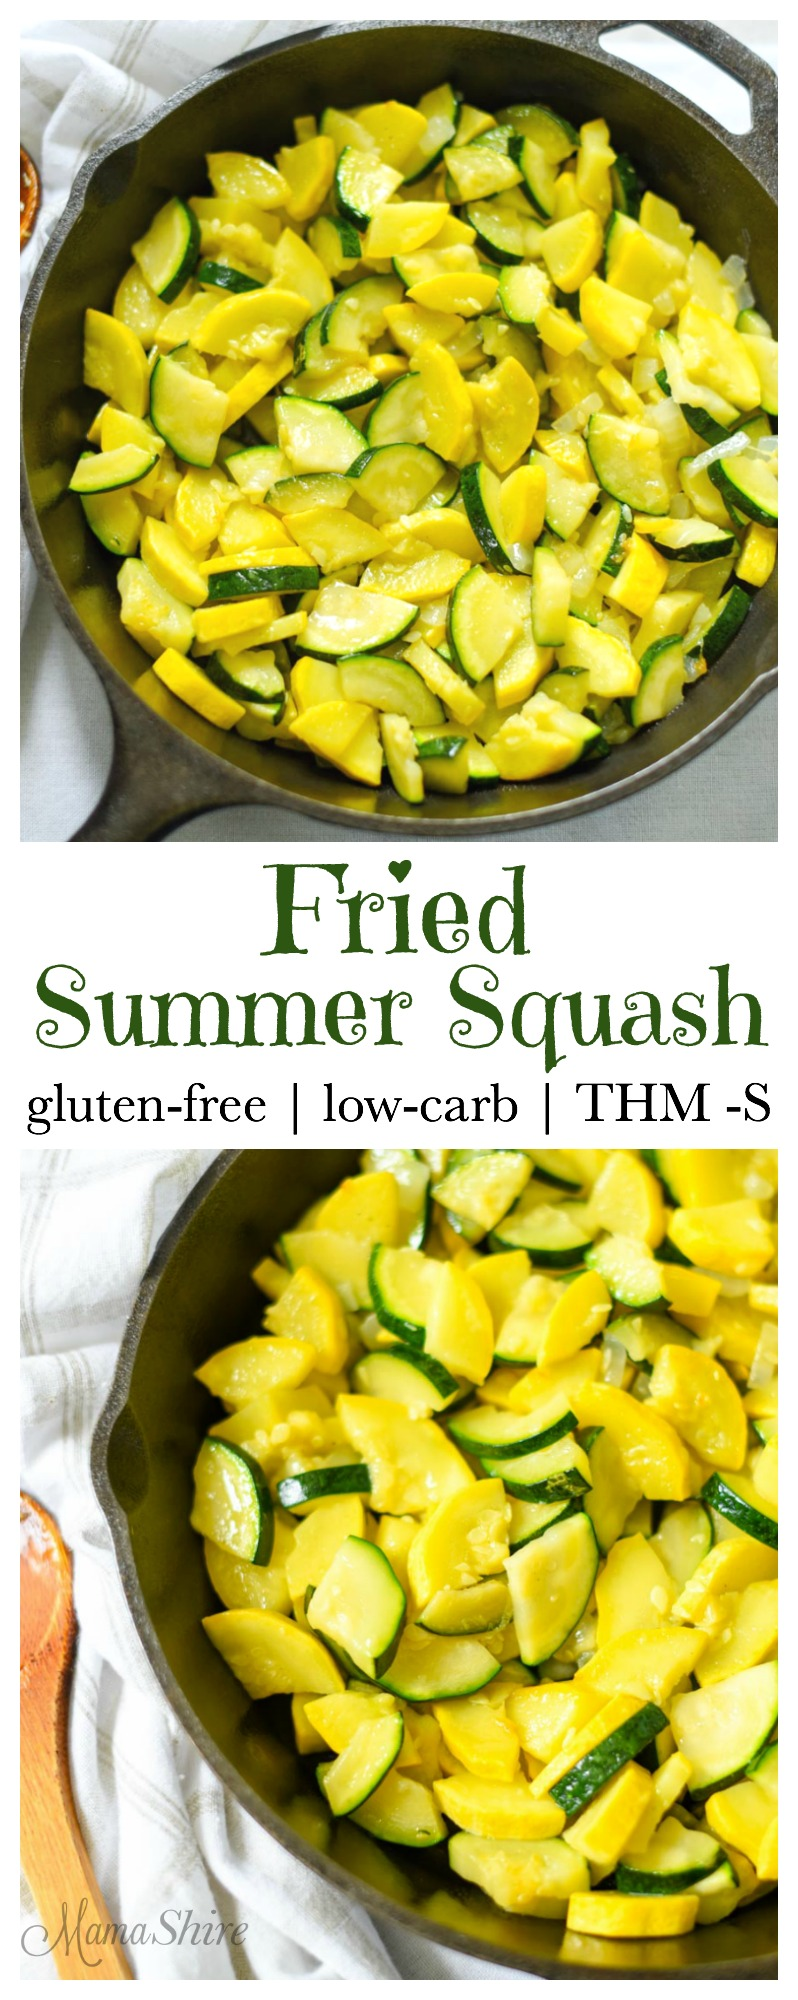 Fried Summer Squash - Gluten-free, low-carb, THM-S